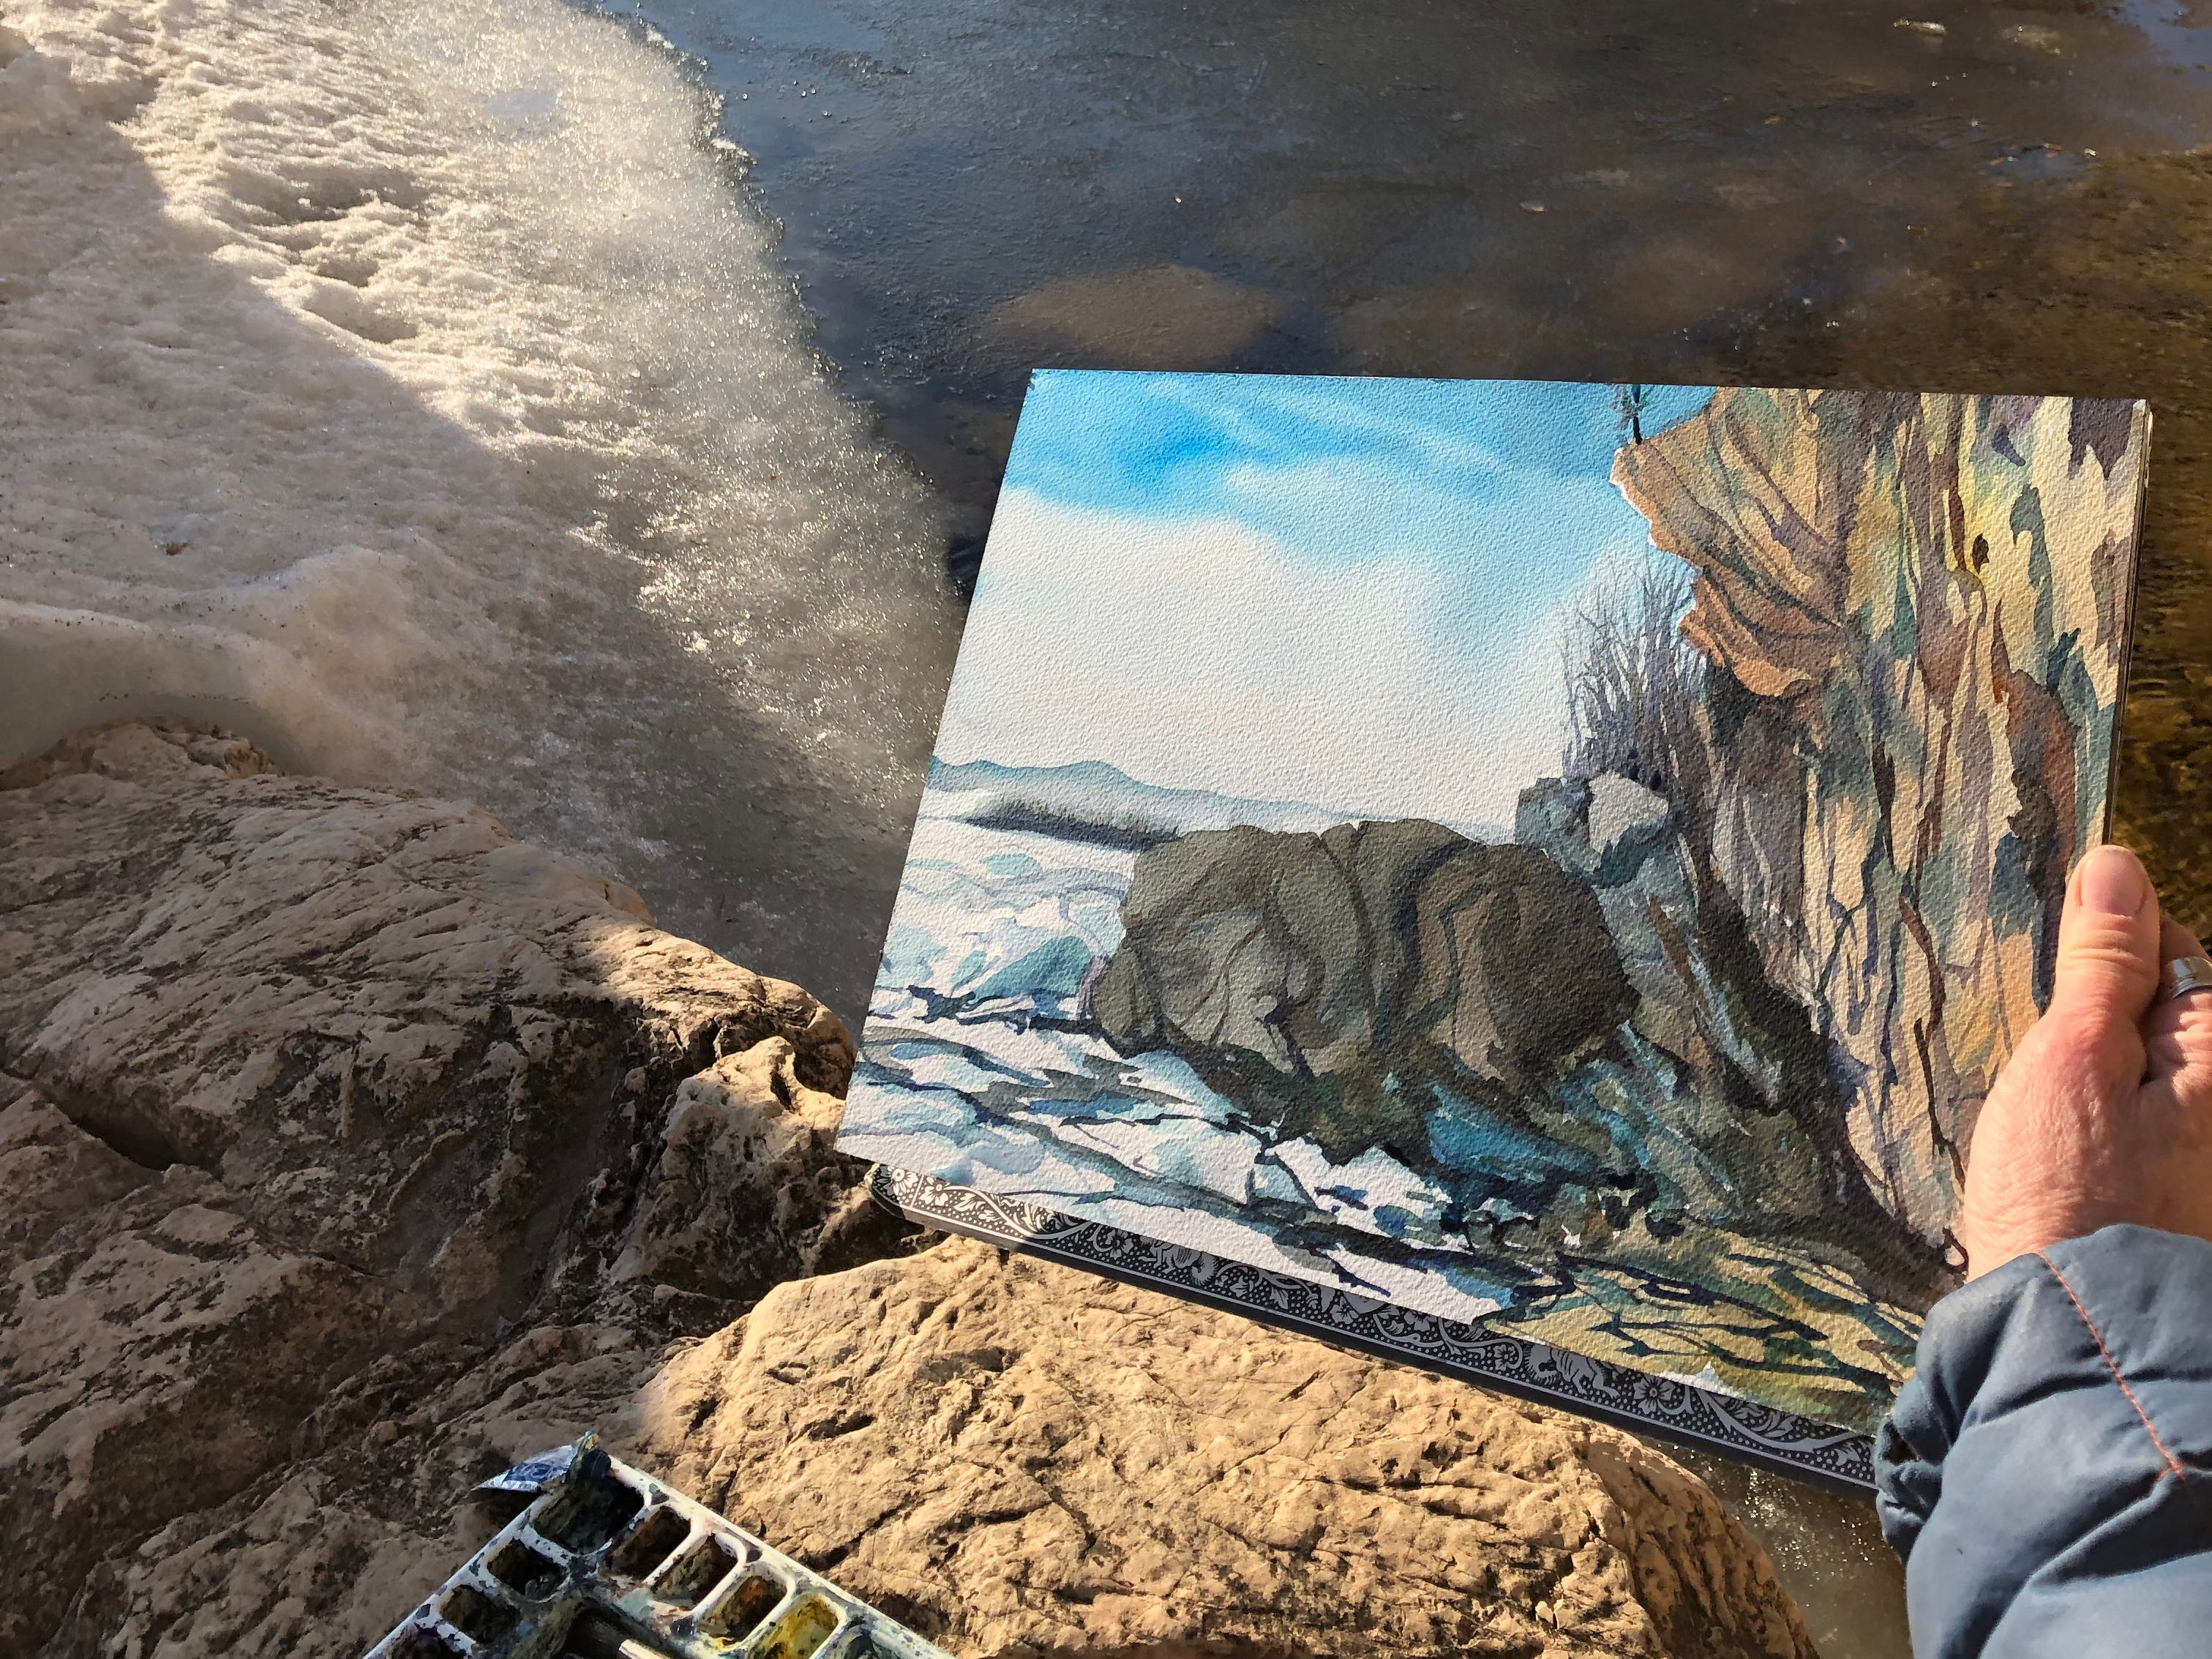 Burlington artist Katharine Montstream holds a watercolor painting she completed along the Lake Champlain coastline on March 27, 2019.